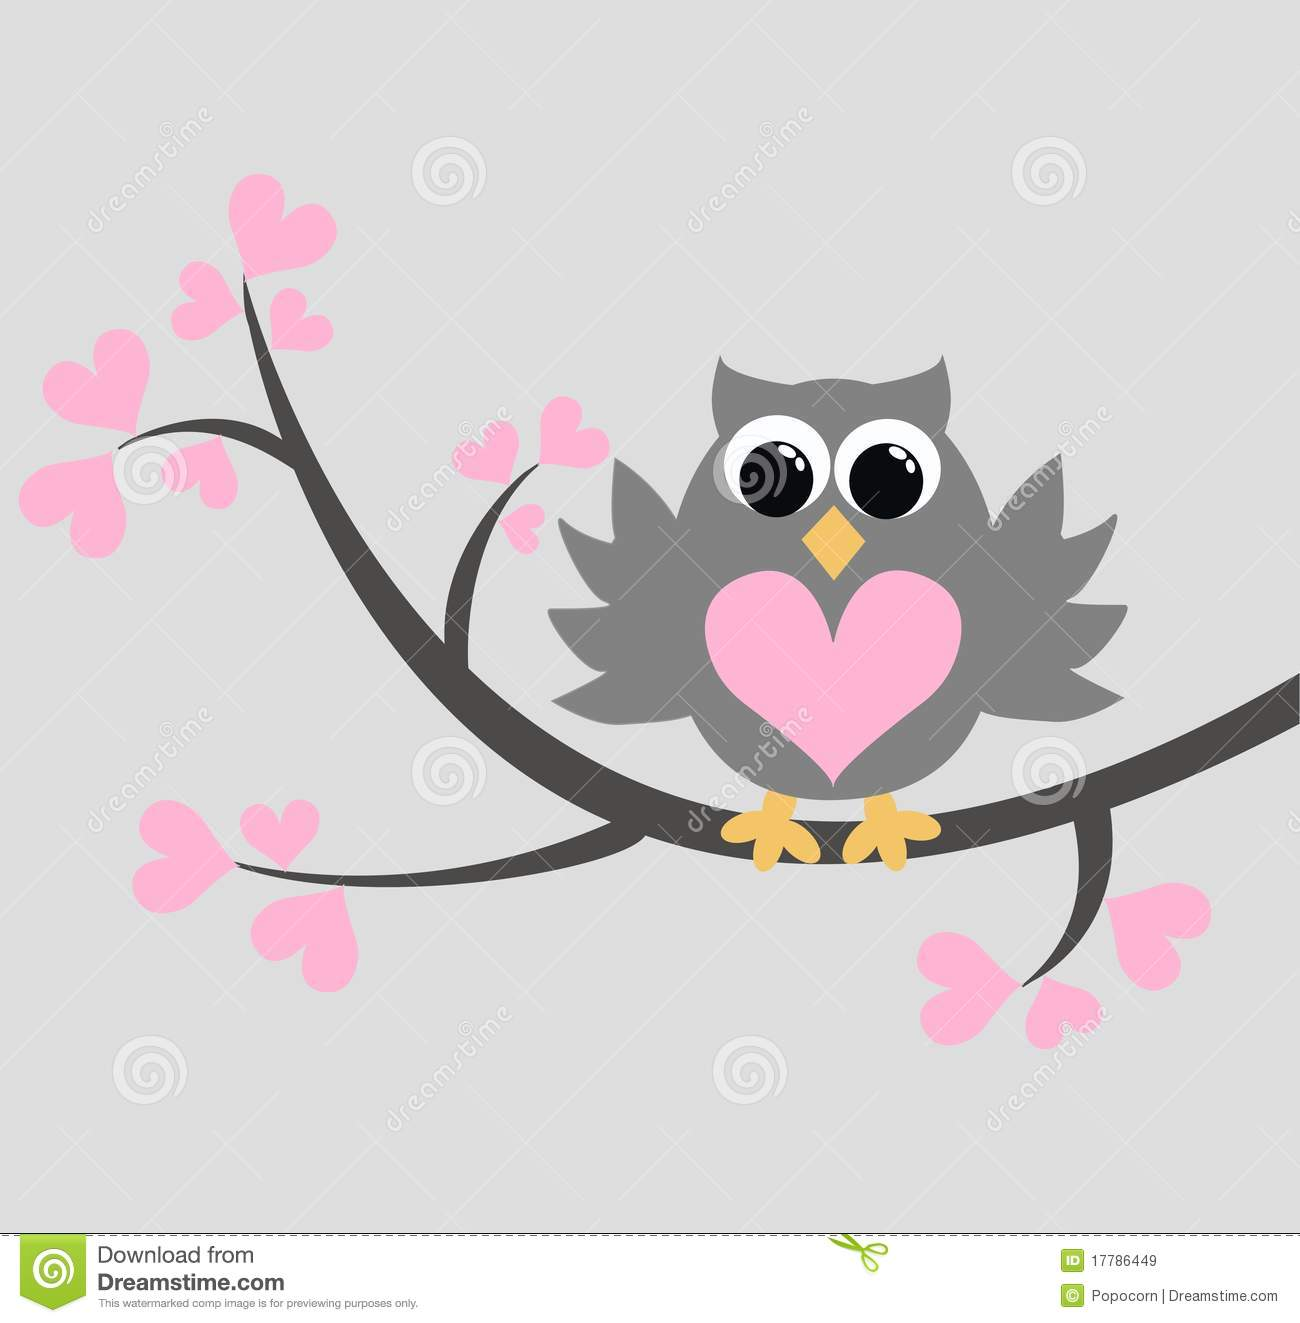 Cute owl love drawing - photo#27